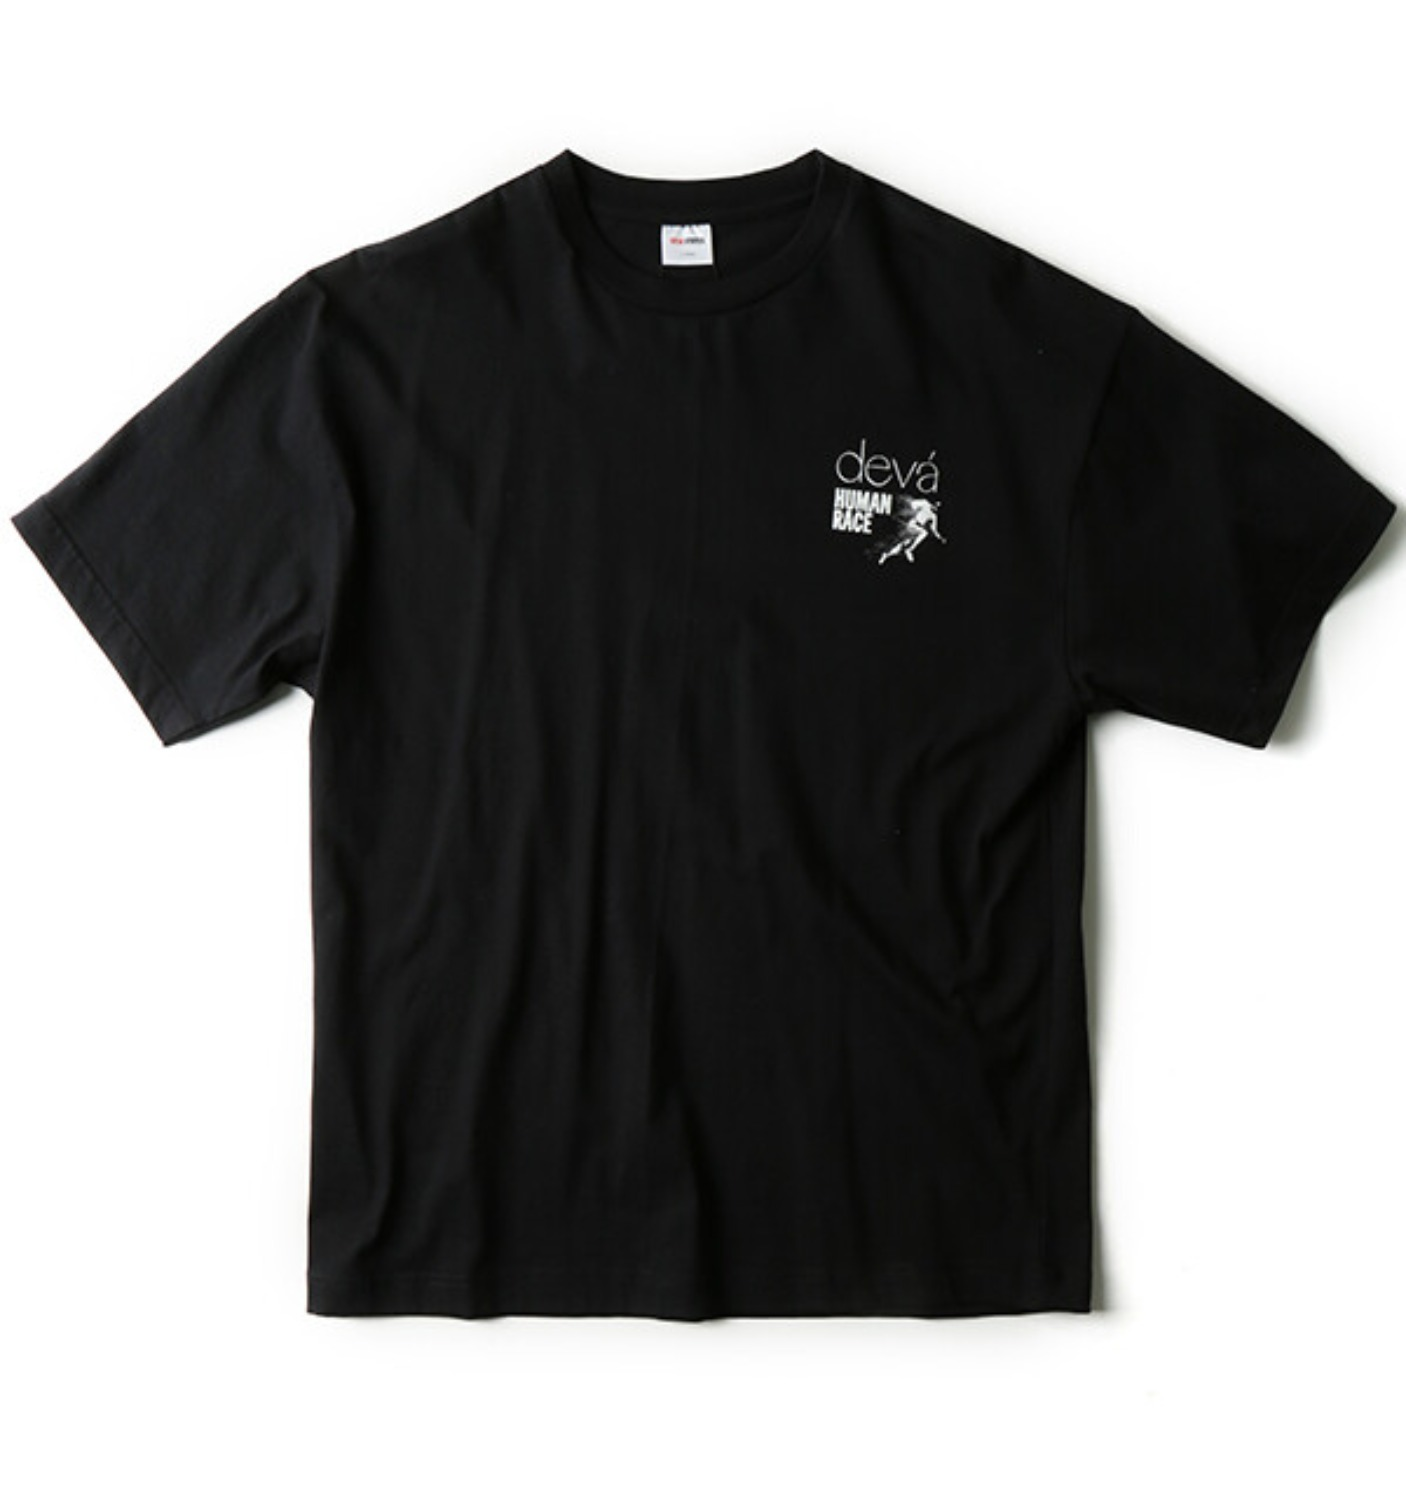 HUMAN RACE T-SHIRT BLACK